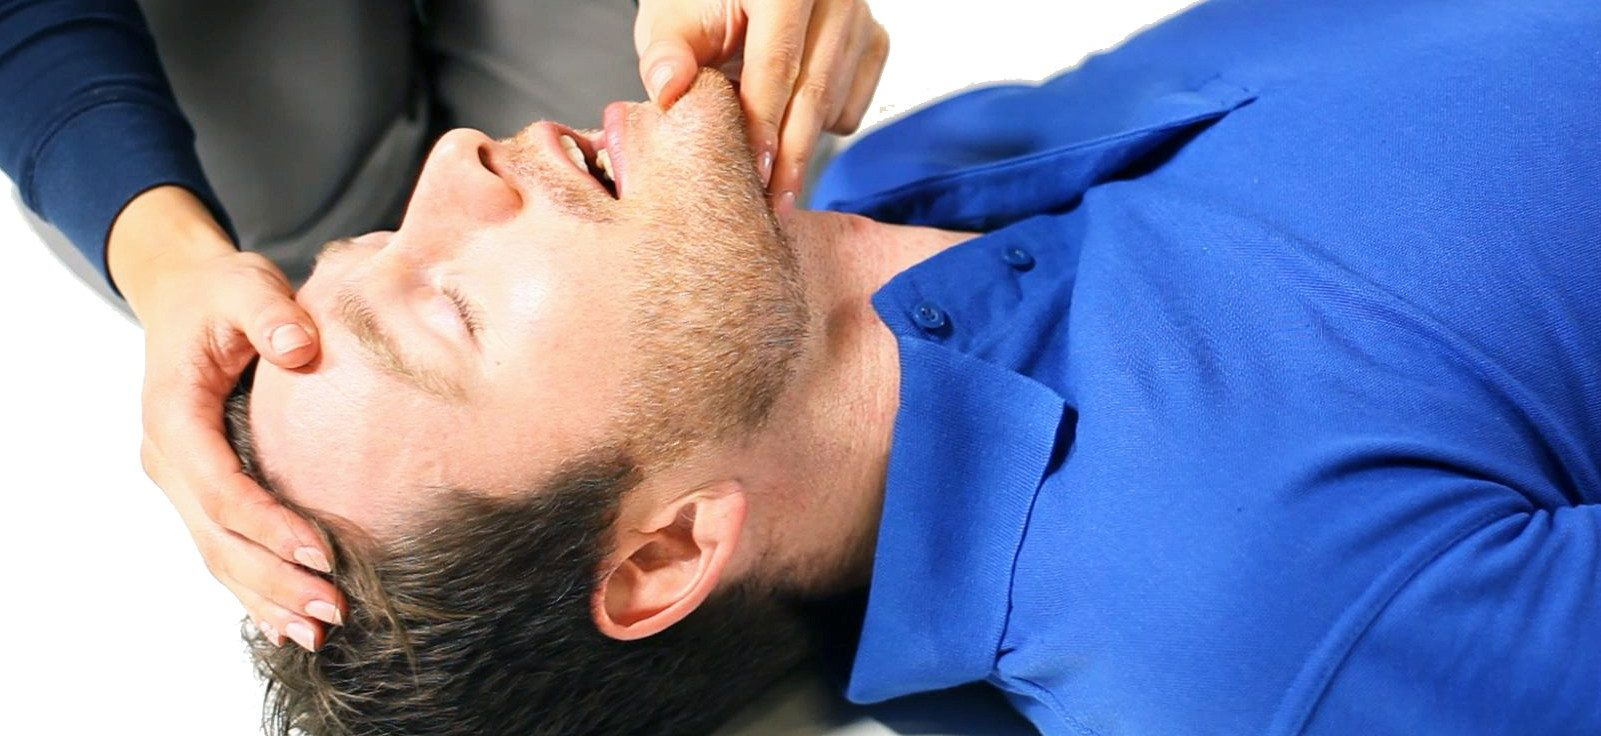 The Basics Of The First Aid at Work Awareness Course